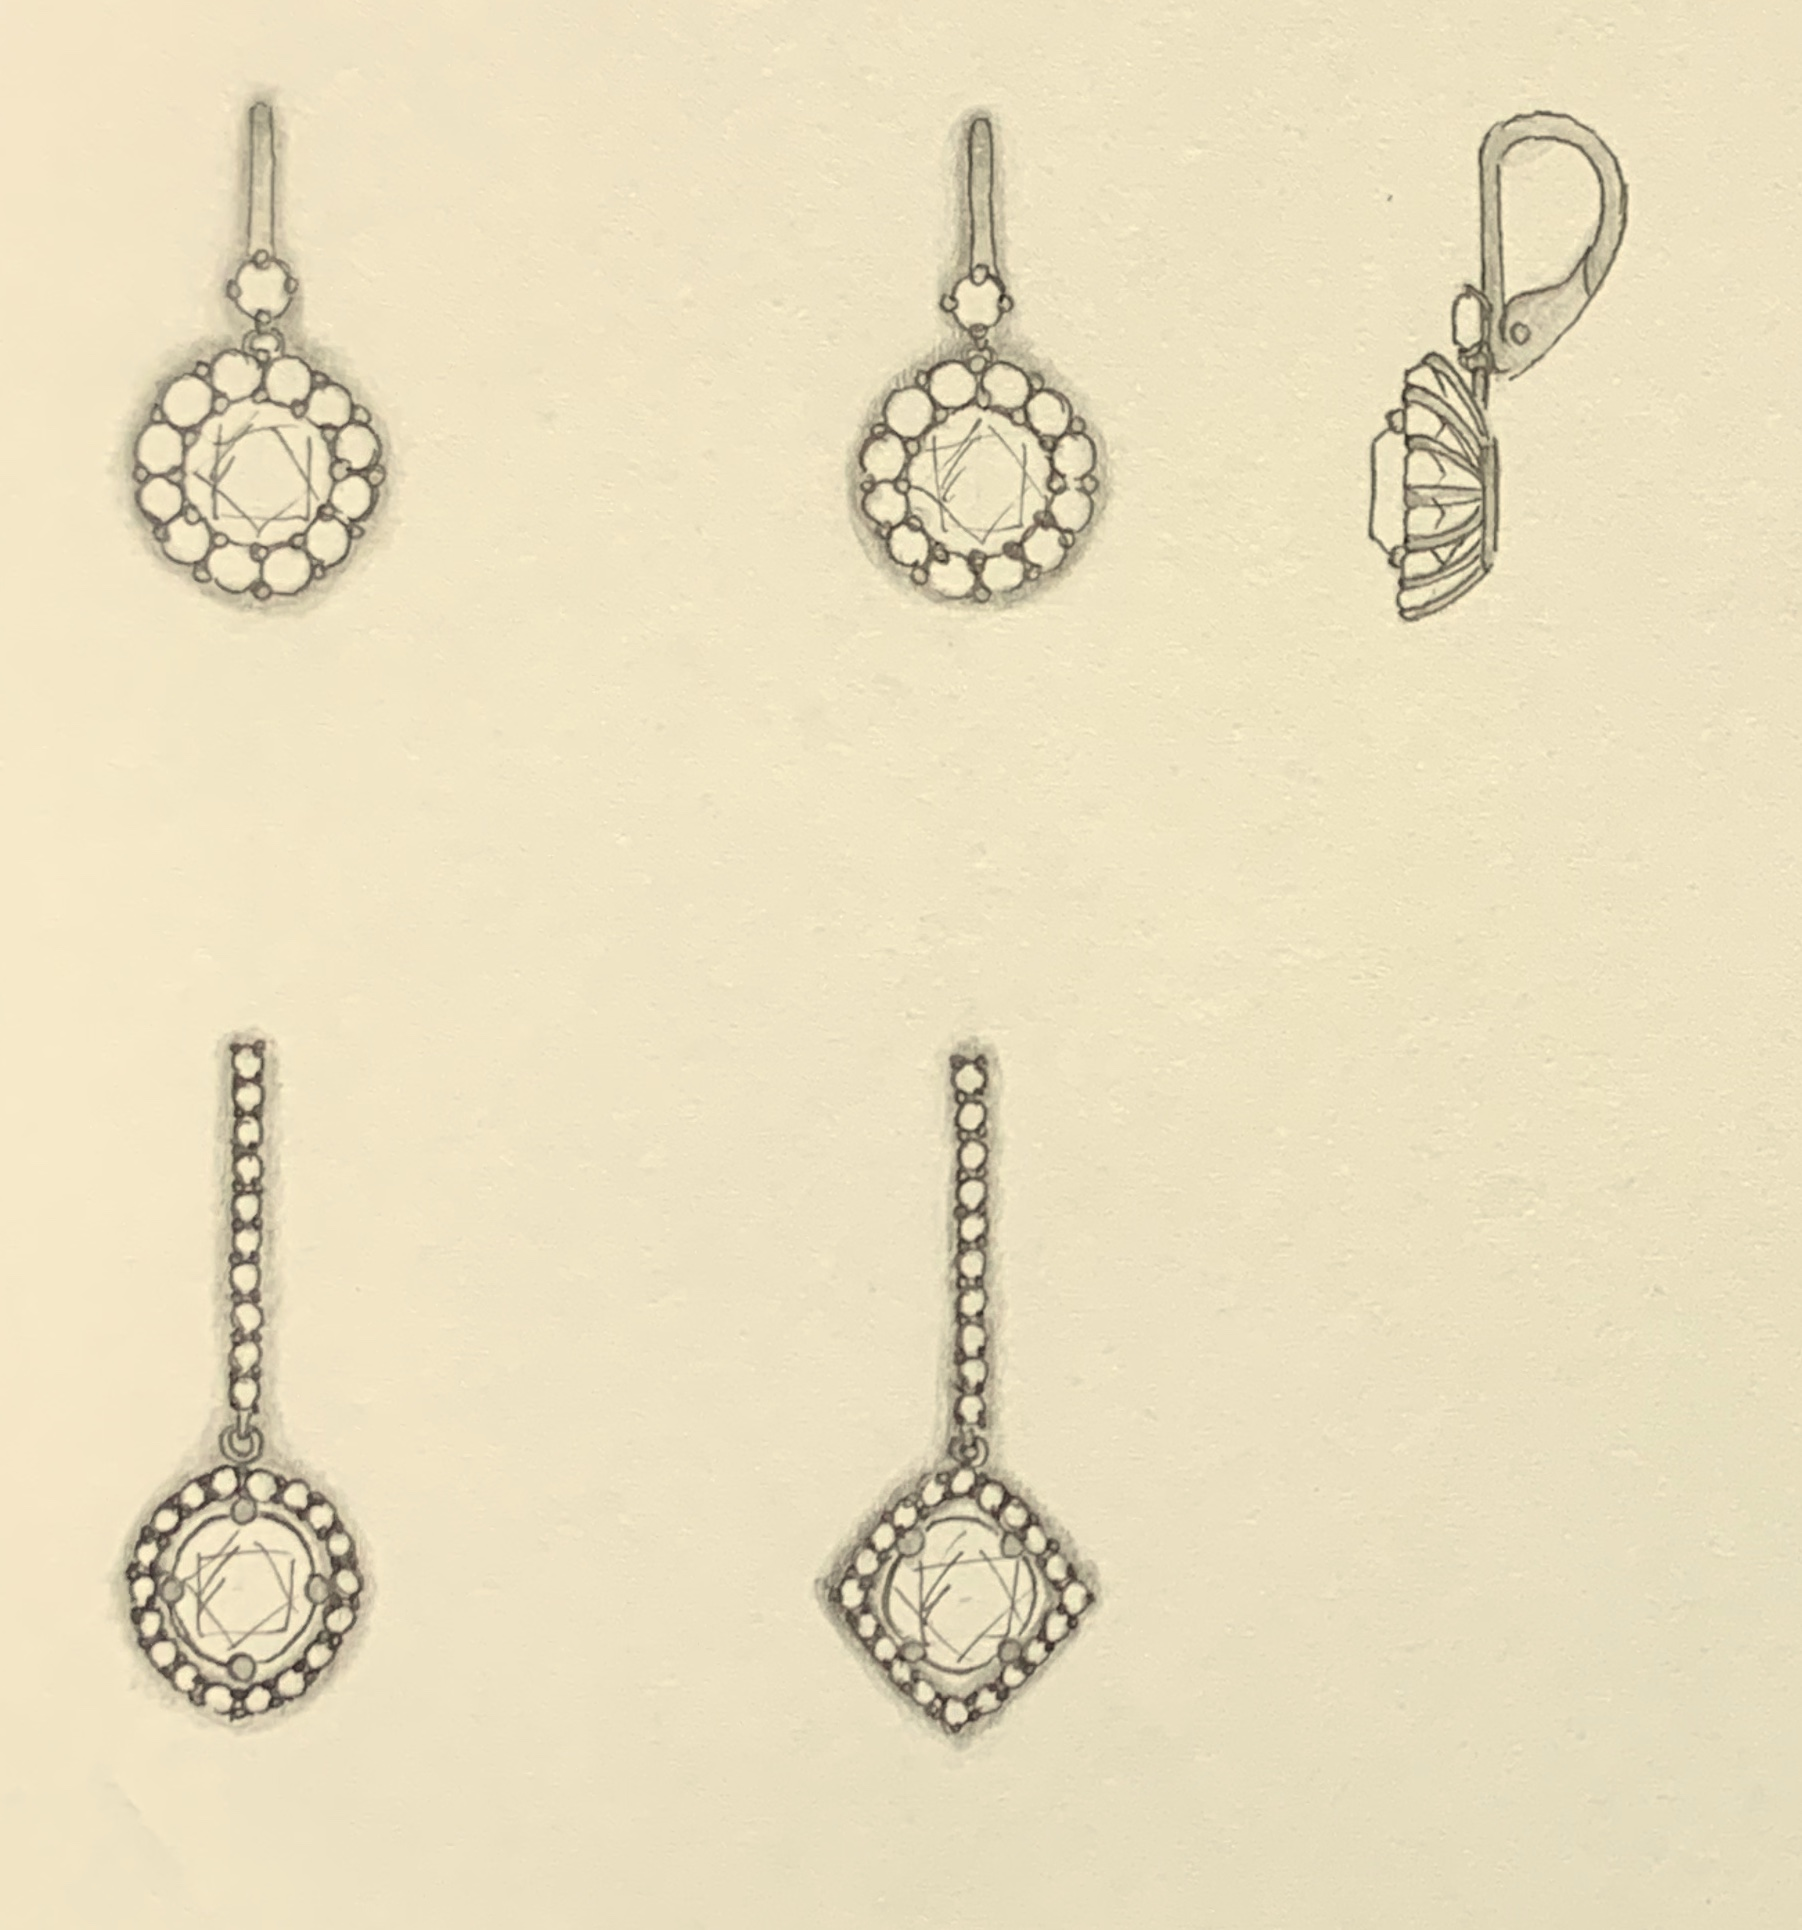 Choices for a pretty daisy cluster earring design.